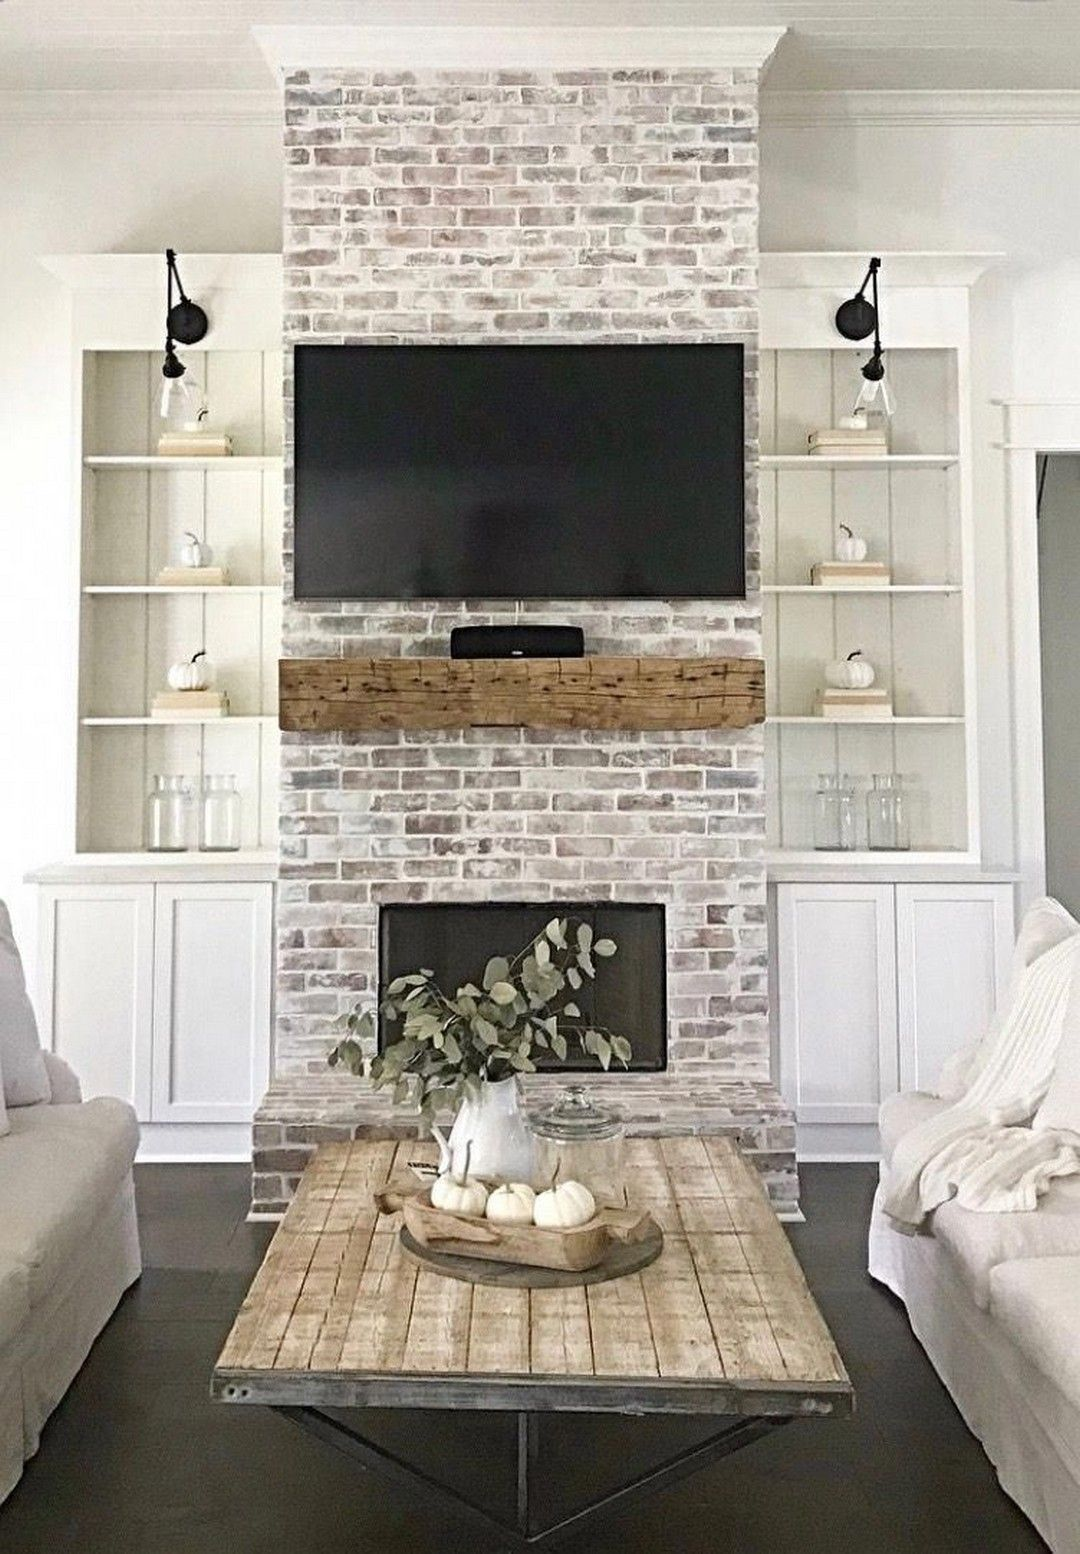 81 Awesome Farmhouse Fireplace Design Ideas To Beautify Your Living Room images